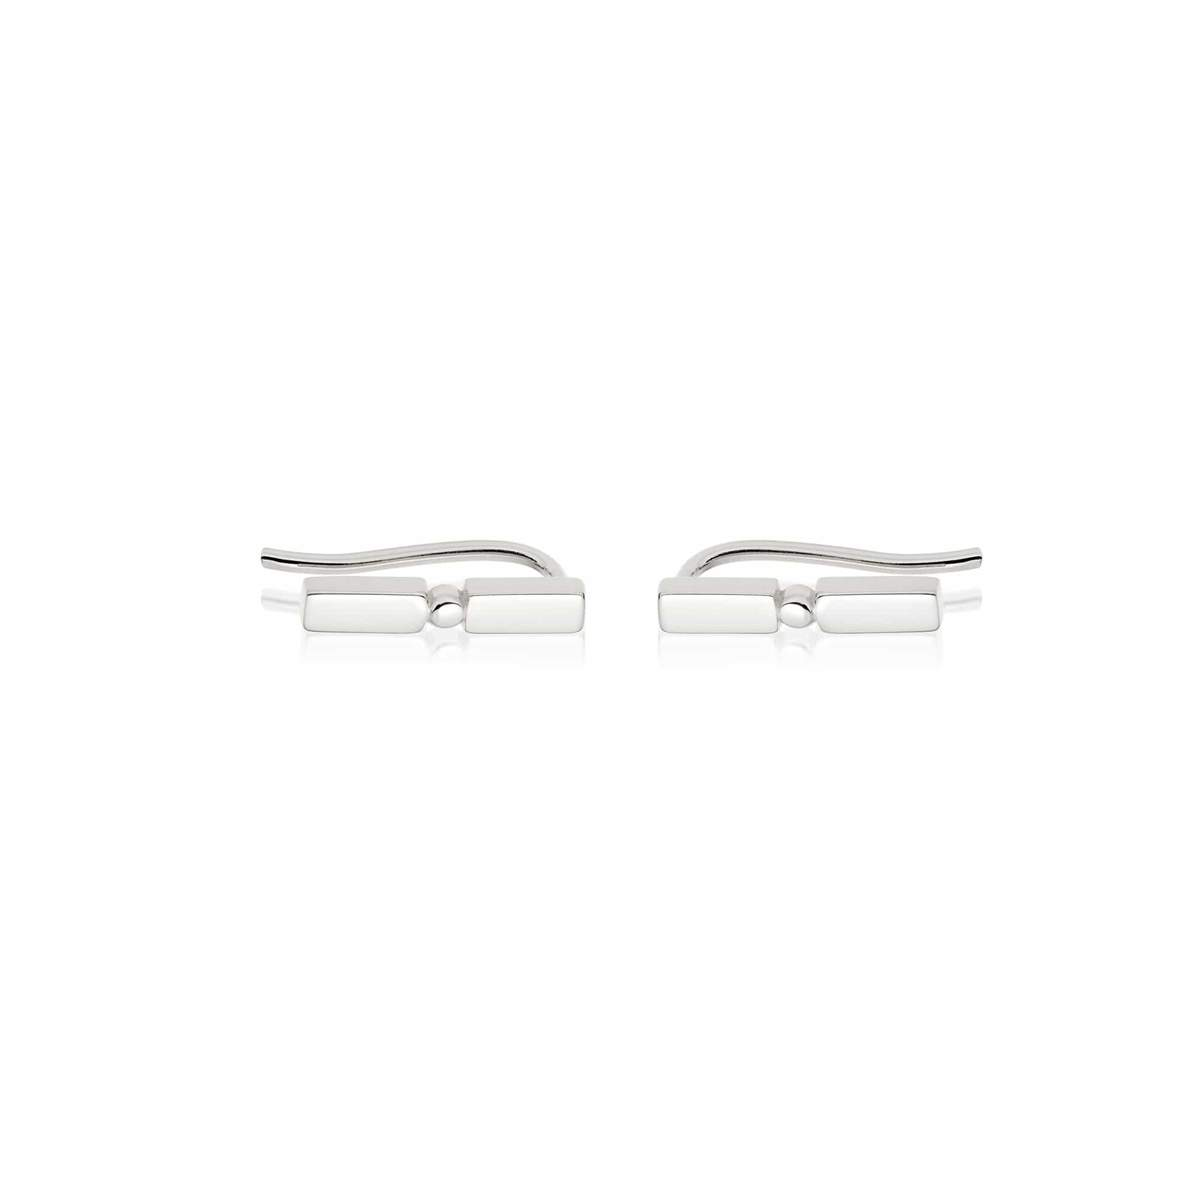 STACKED CRAWLER EARRINGS - STERLING SILVER